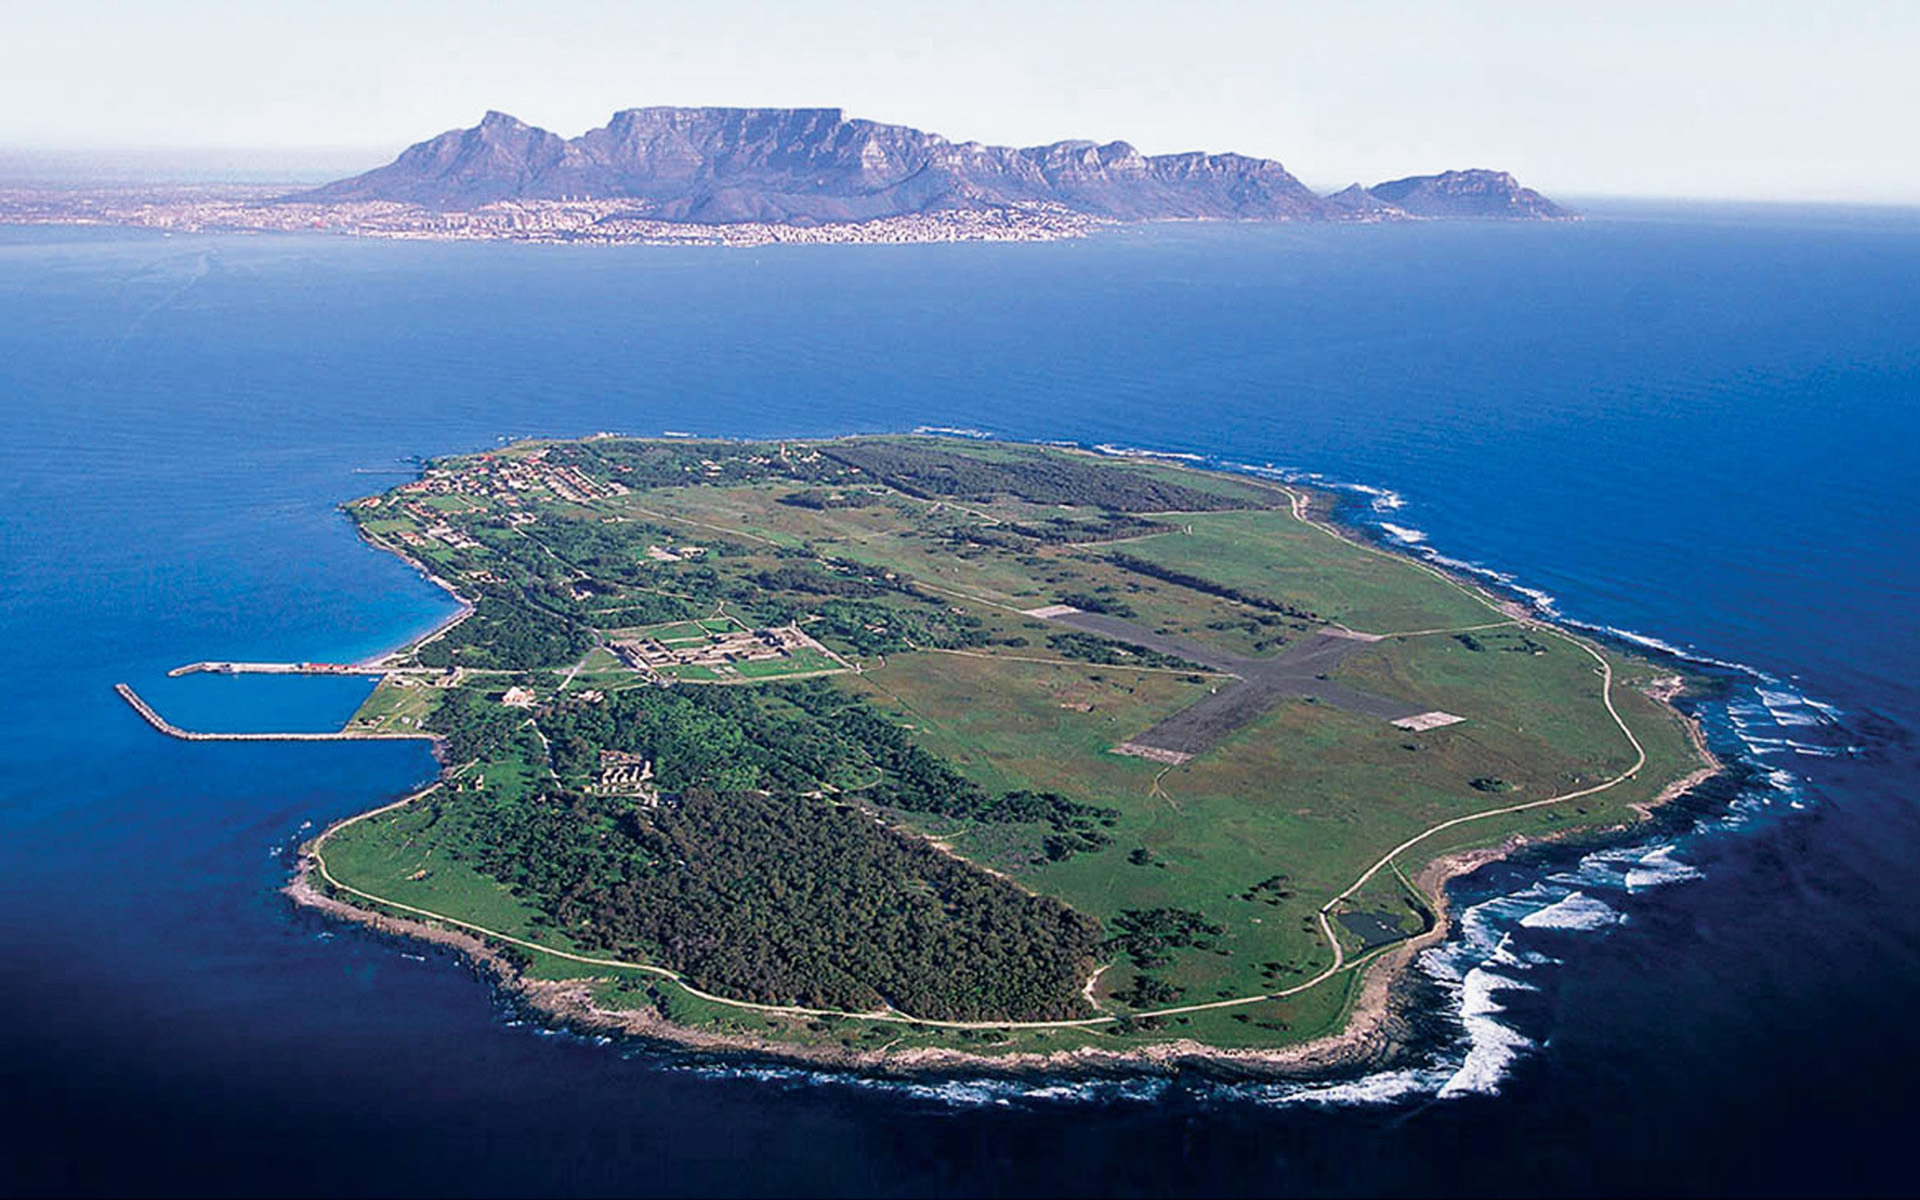 Private Robben Island Charter - Exclusive 3 hour Charter trip around Robben Island.R42,000 excl. VAT- Full Crew & Stewardess - Luxury Chauffeur Service- Complimentary Drinks: local beers, wines, sparkling wines & soft drinks.